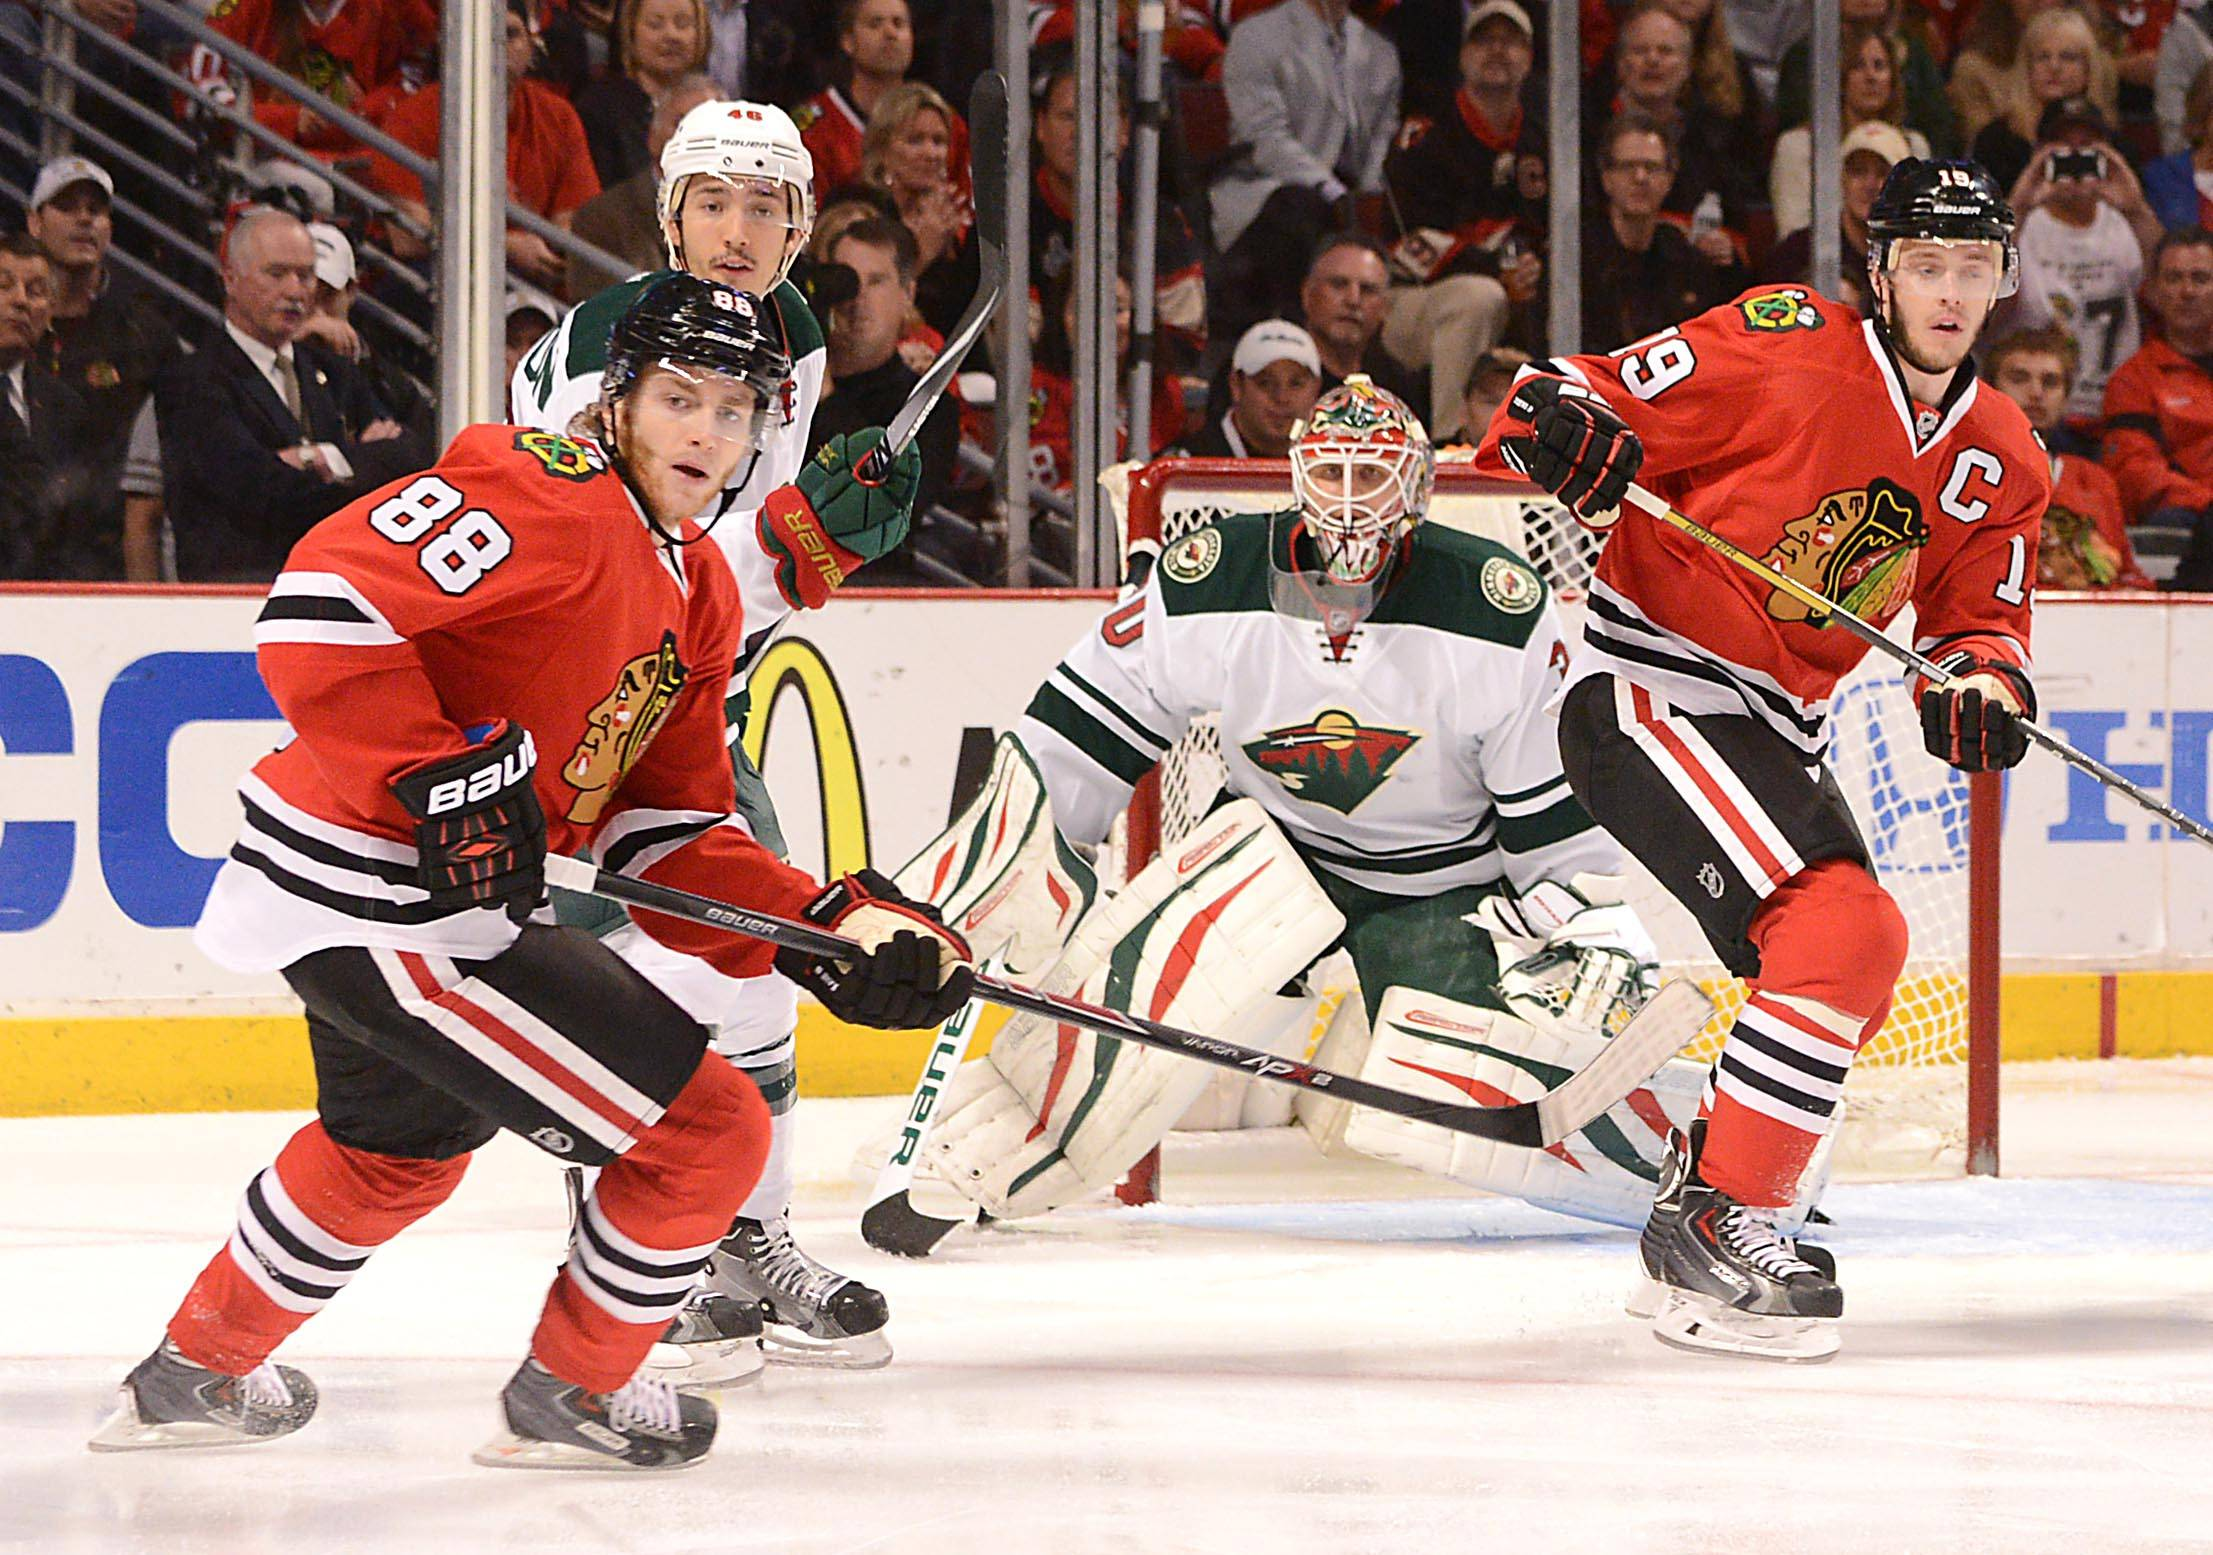 Patrick Kane (left), Jonathan Toews and the rest of the Blackhawks look to close out the Wild on the road in Tuesday night's Game 6.